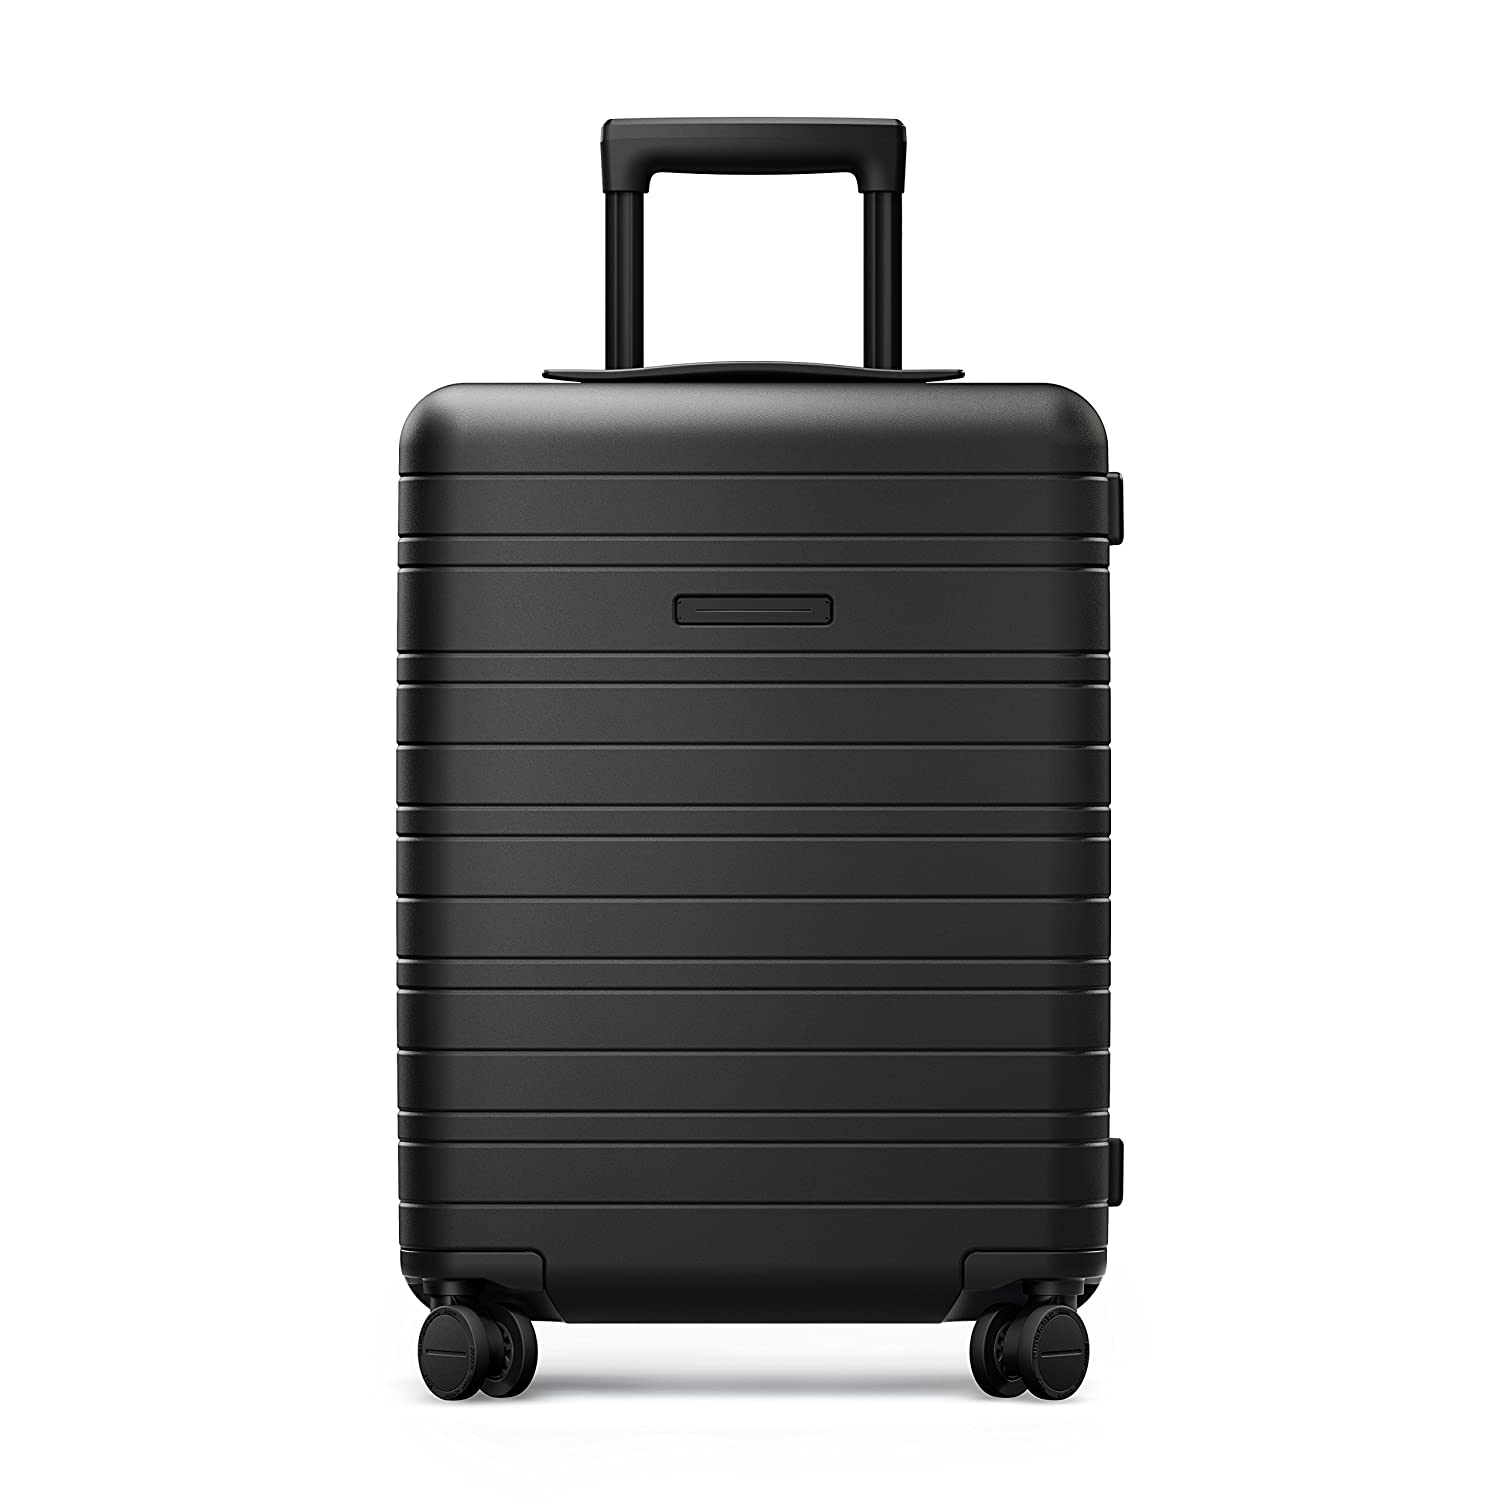 17a5ba53b392 HORIZN STUDIOS H5 Cabin Luggage | Carry On Suitcase | 55 cm, 35 L, 4 ...